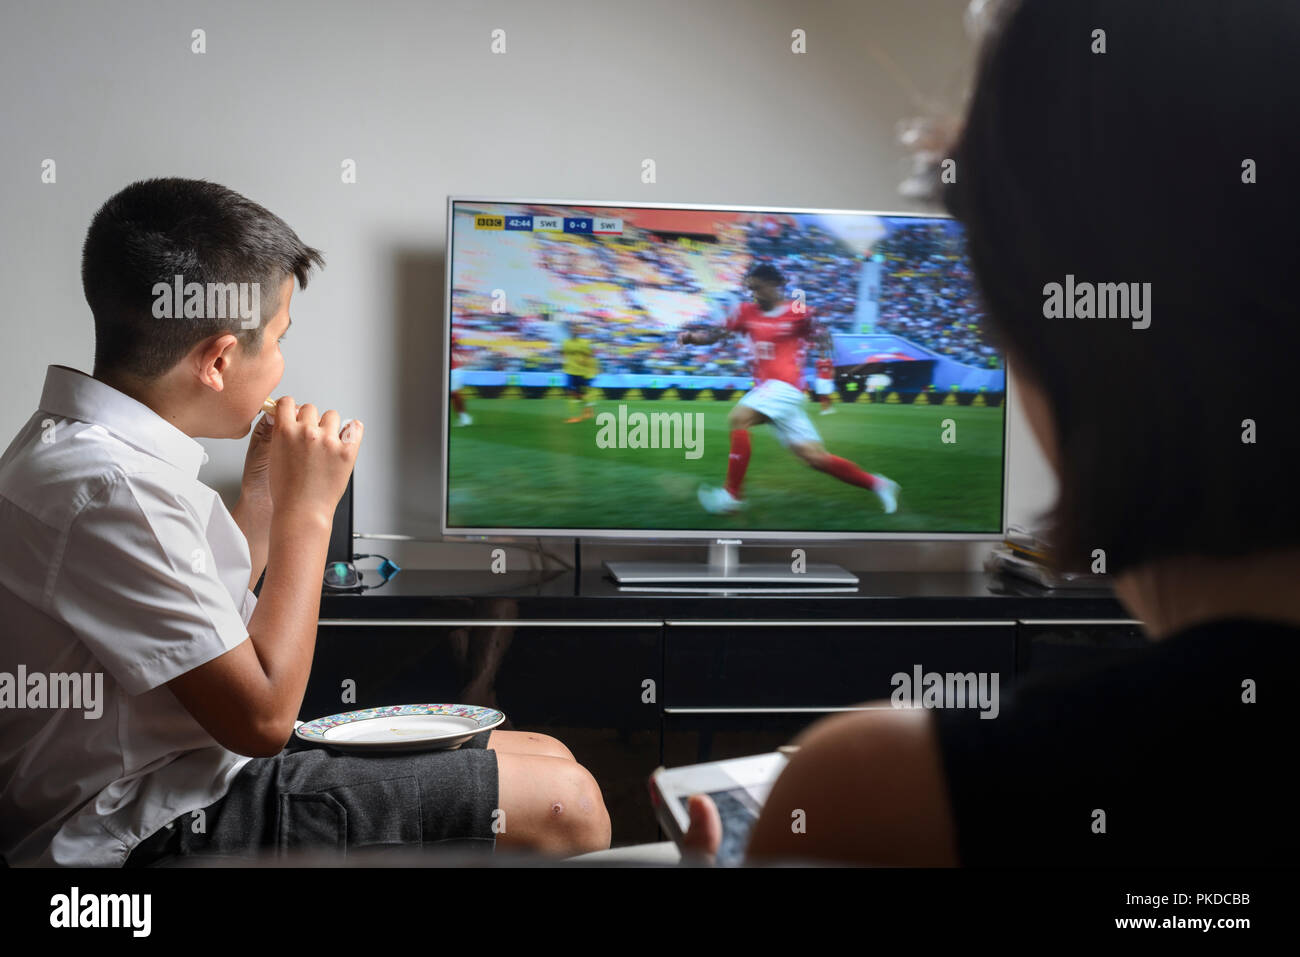 Schoolboy 10 years old,in school uniform snacking and watching football match on TV Stock Photo